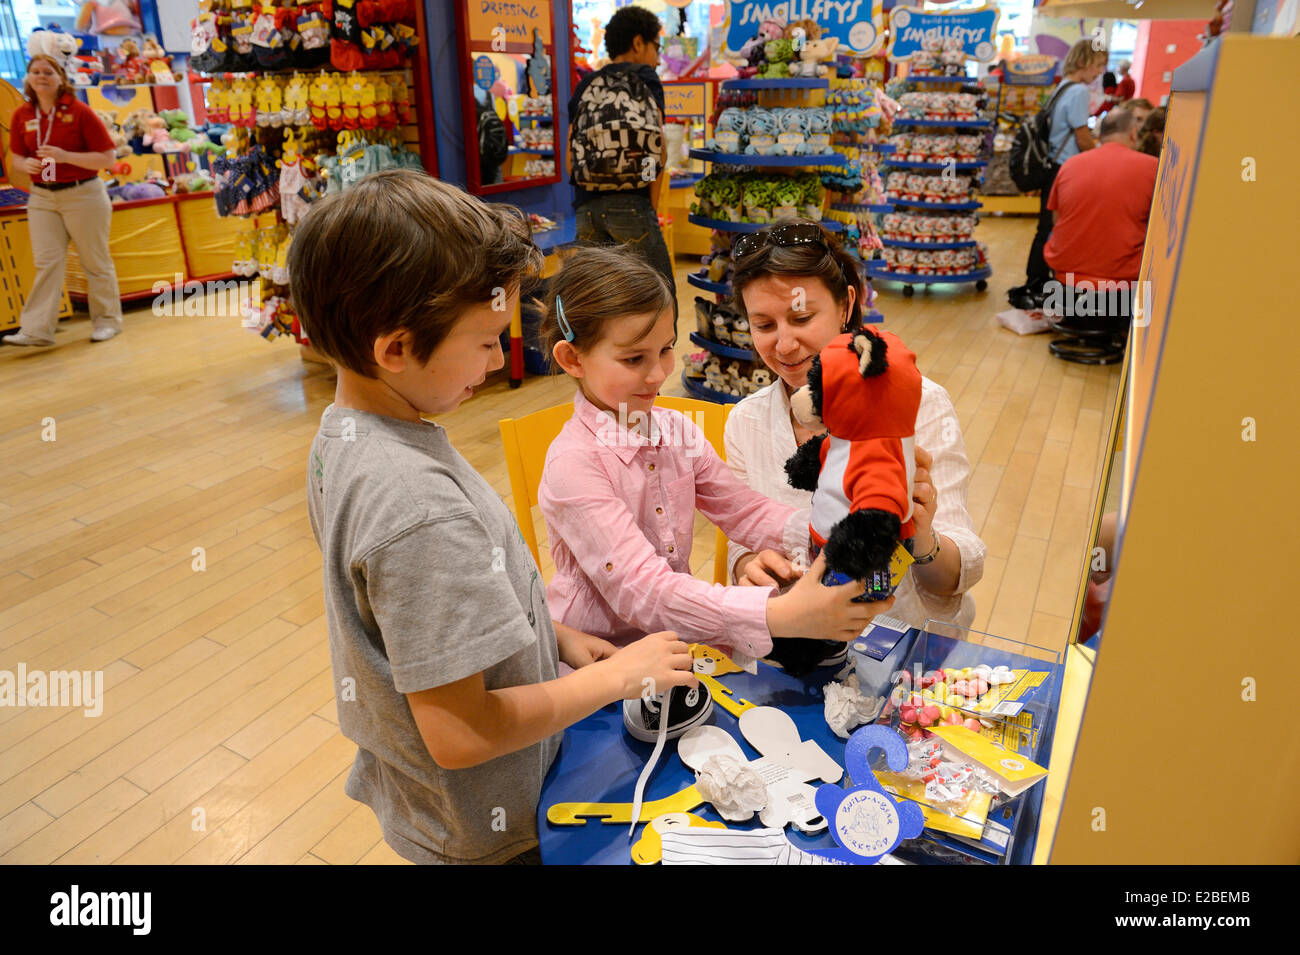 United states new york city manhattan midtown 5th avenue manhattan midtown 5th avenue build a bear a toy shop and workshop where kids can customize their stuffed friends with birth certificate aiddatafo Choice Image